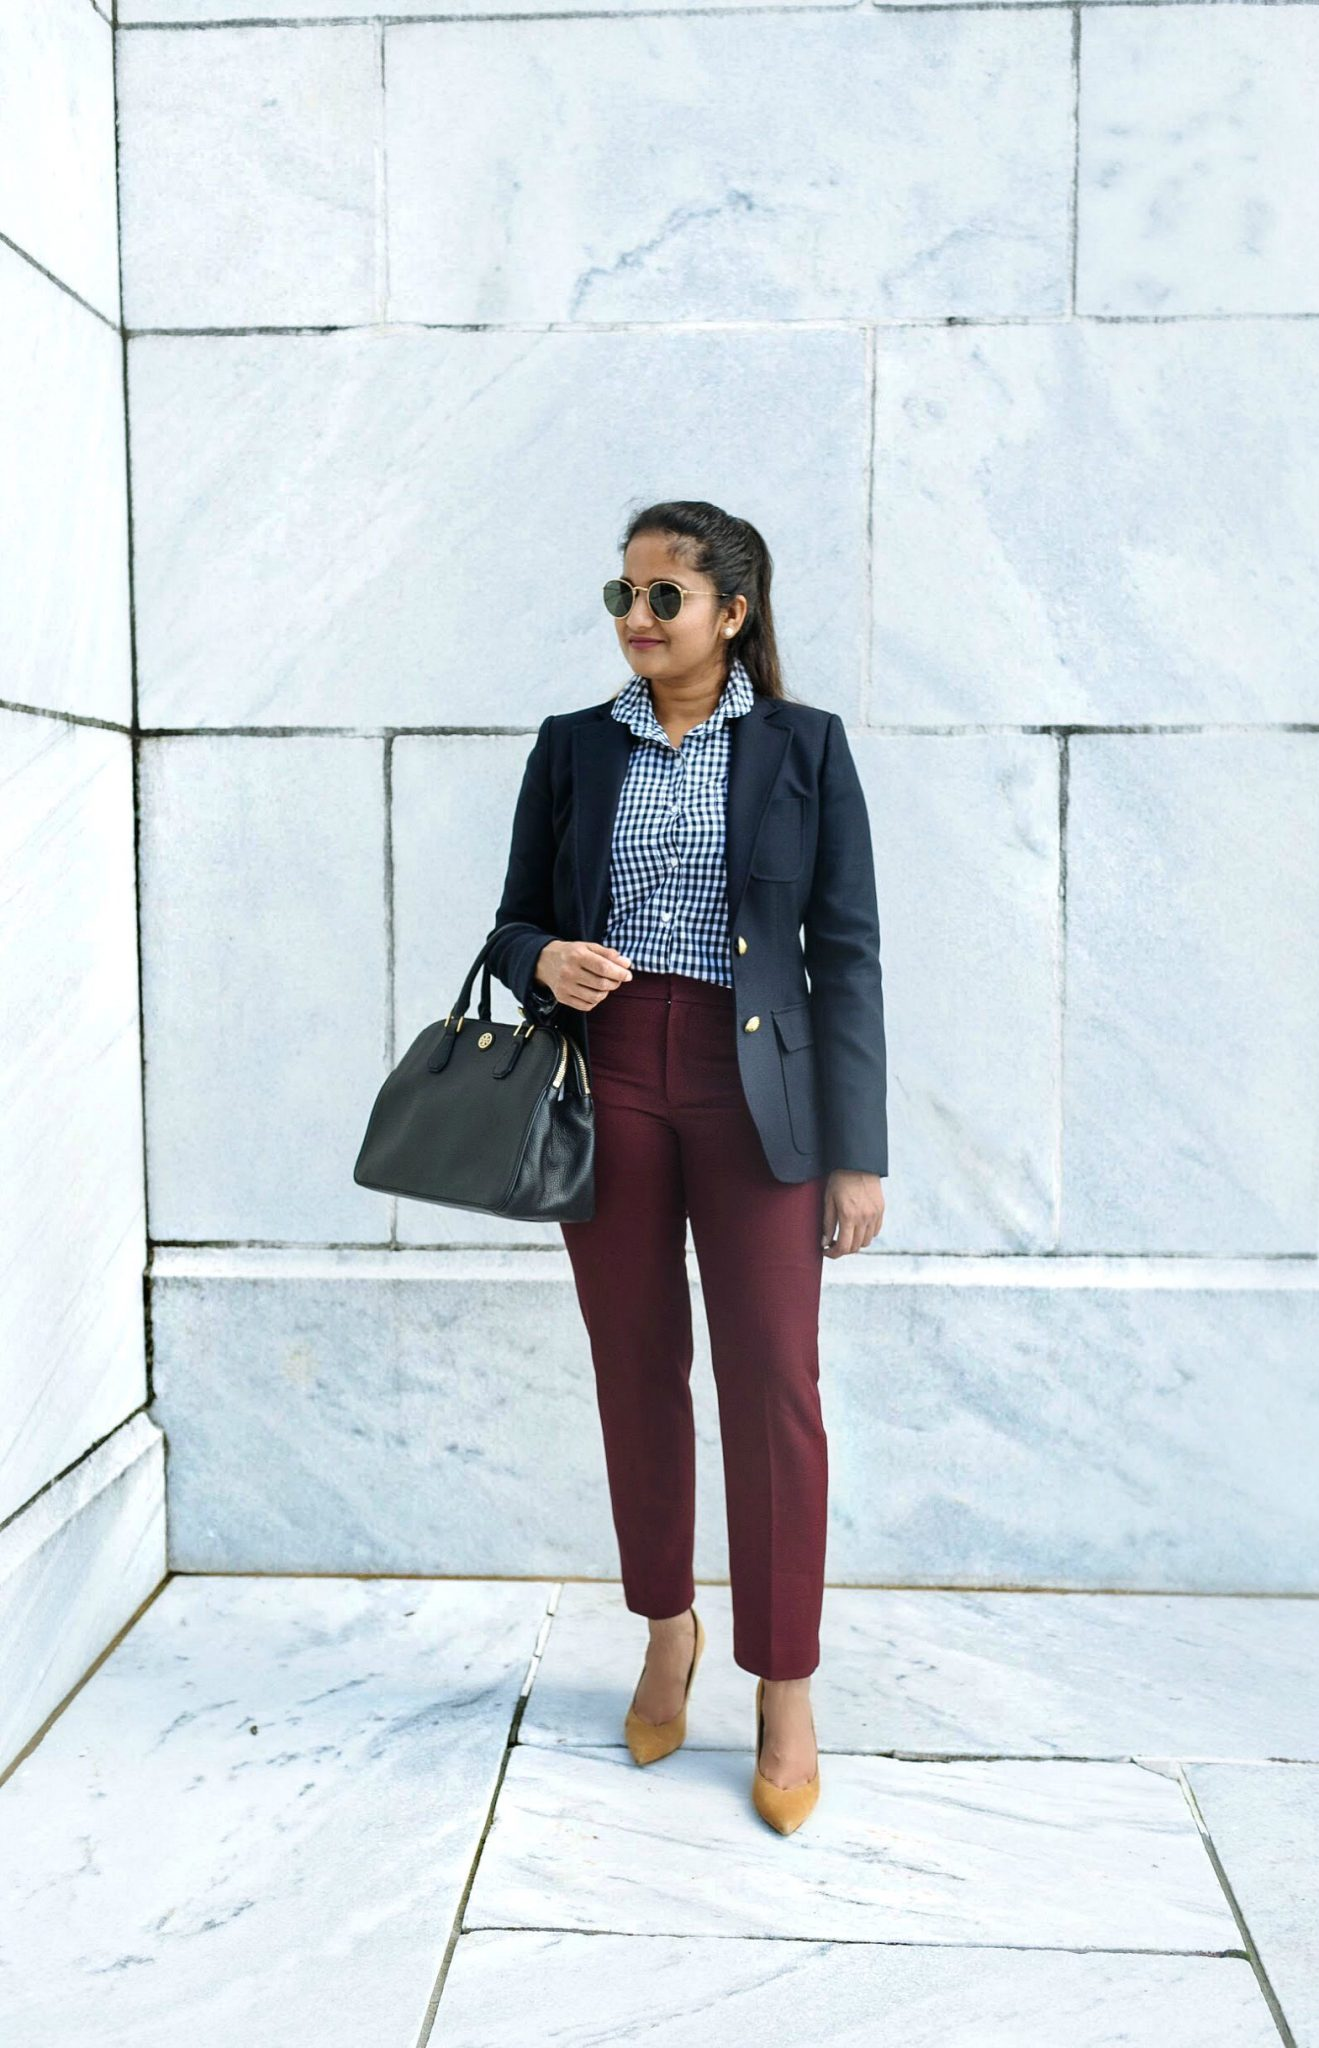 wearing J.crew Schoolboy blazer in navy | Fall Business casual outfit ideas | Colorful Fall Work Outfits featured by popular Ohio modest fashion blogger, Dreaming Loud